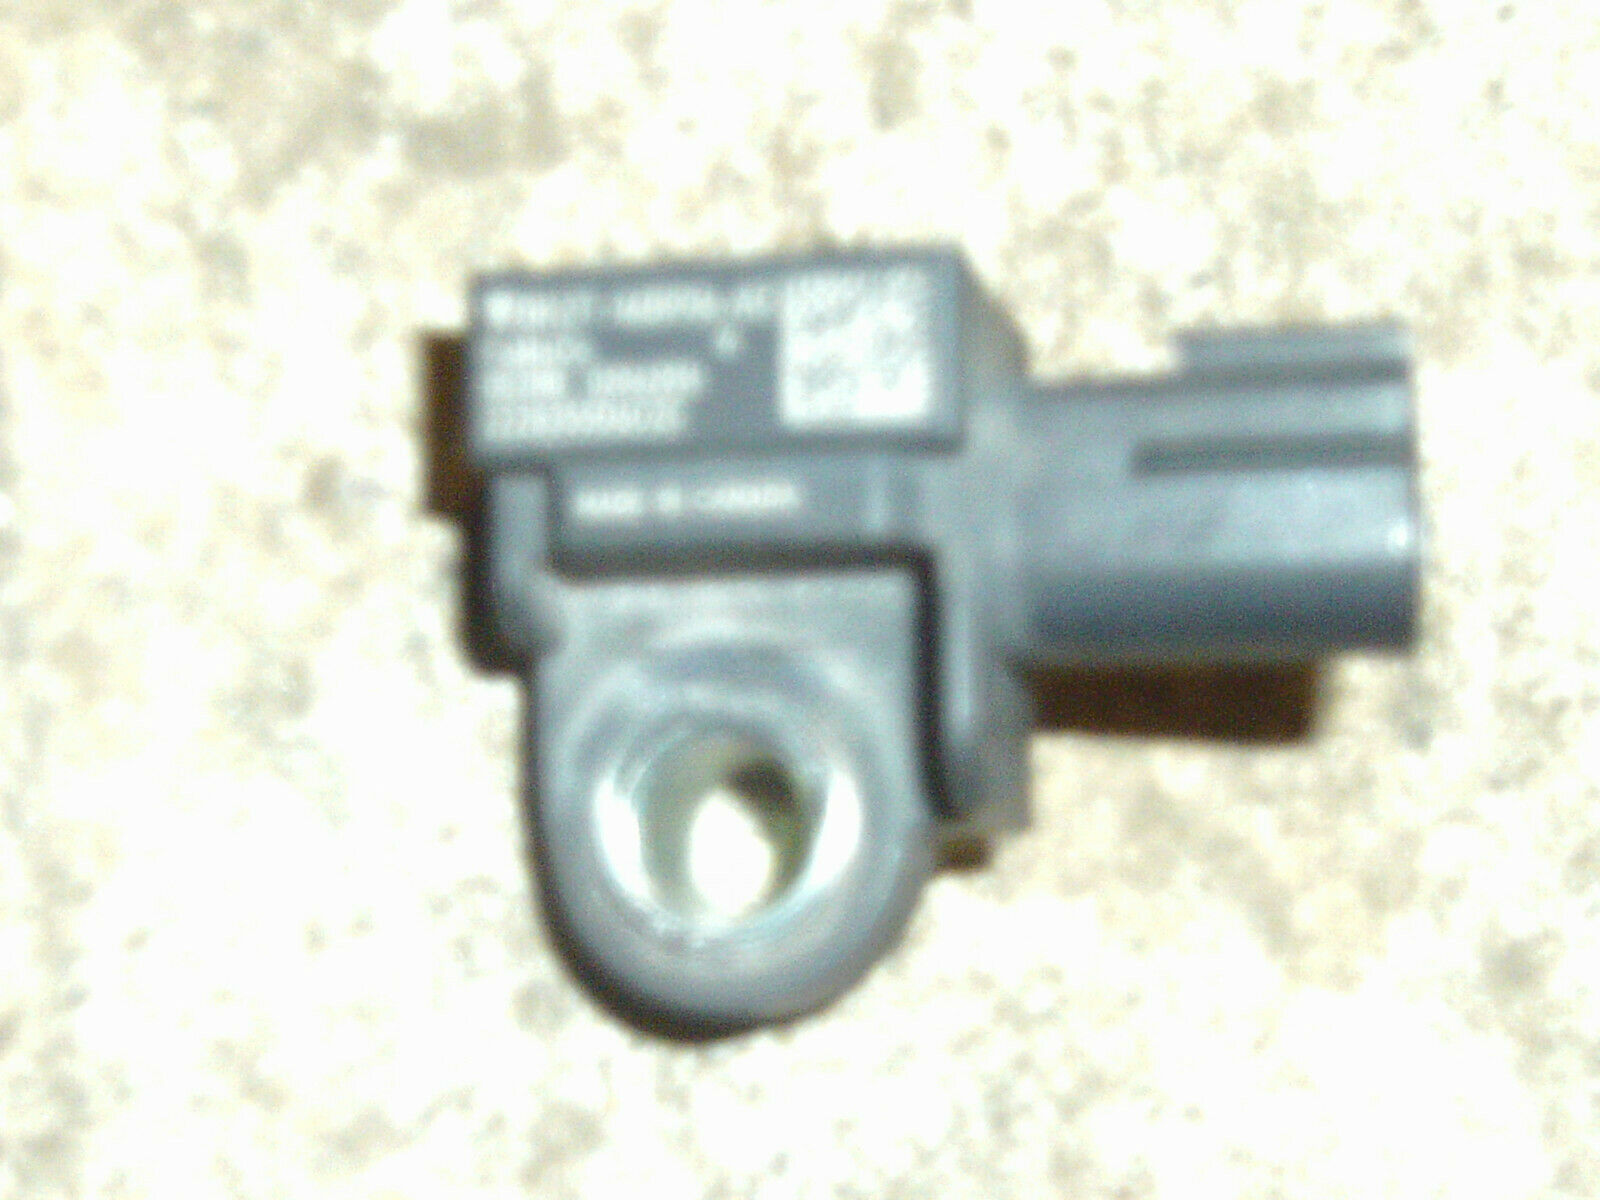 FORD AIR BAG CRASH SENSOR BK2T-14B006-AC Collision Impact OEM BK2T 14B006 AC